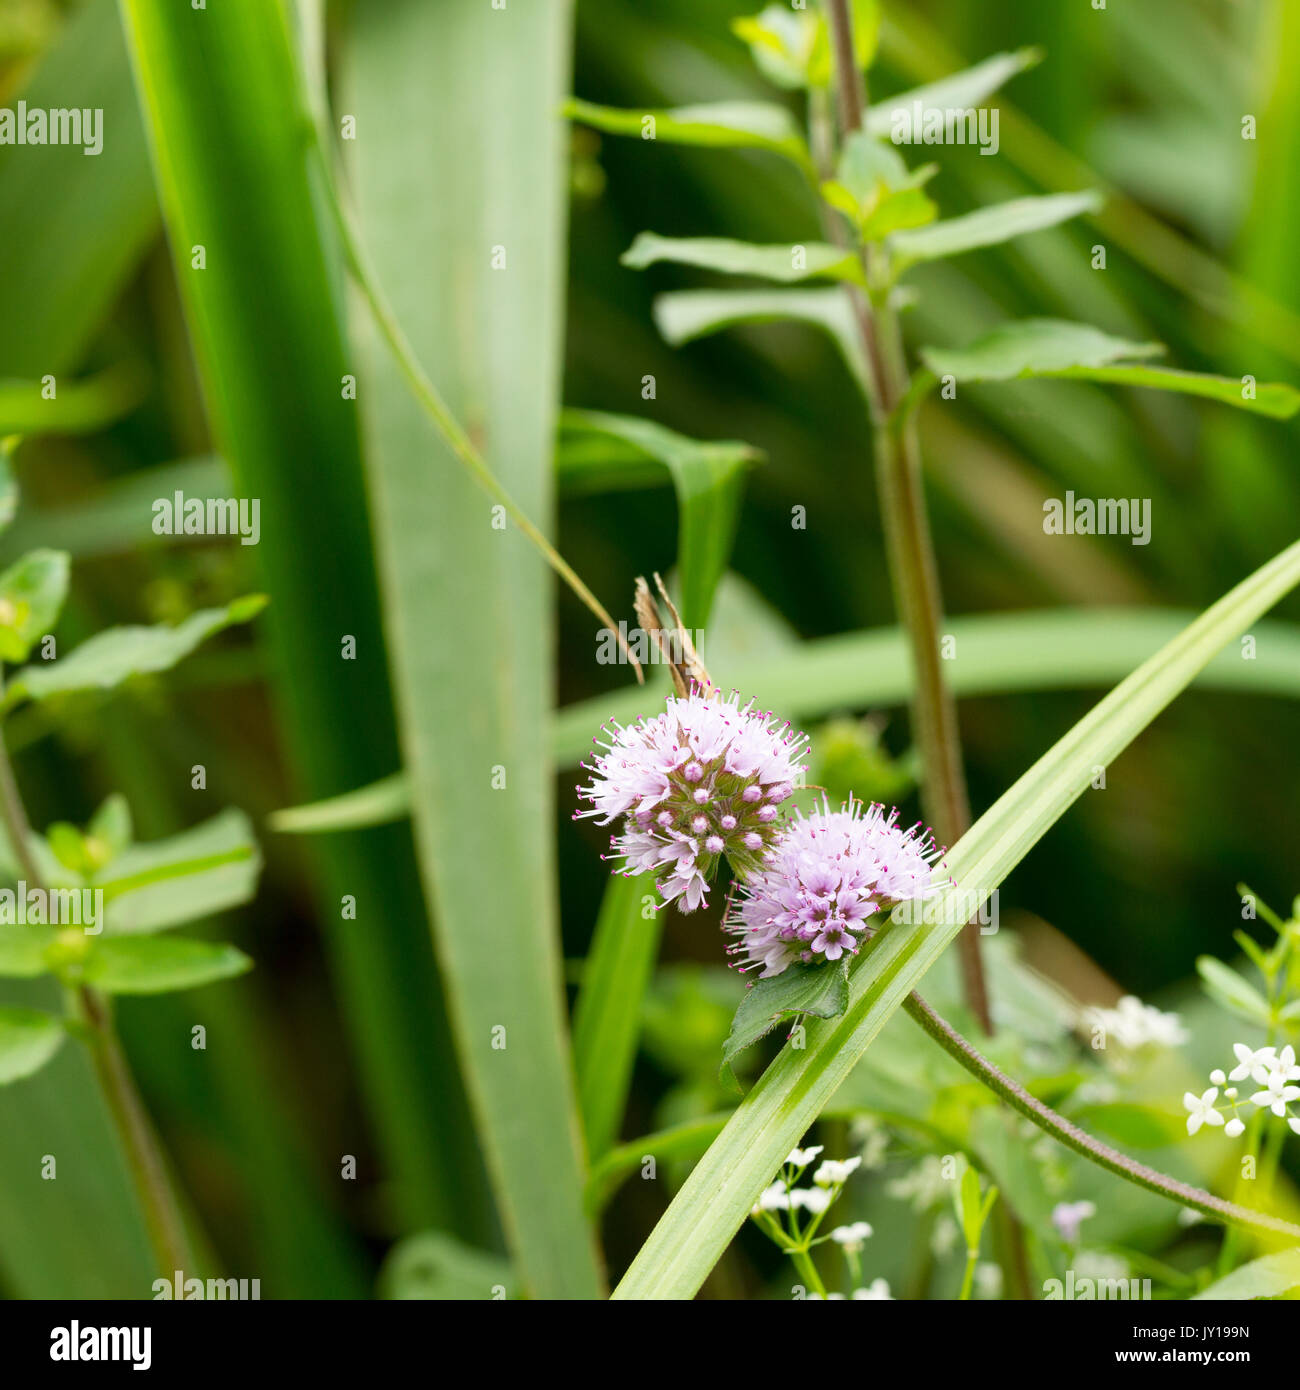 Watermint flowers, Mentha aquatica, growing in summer, Hampshire, United Kingdom Stock Photo